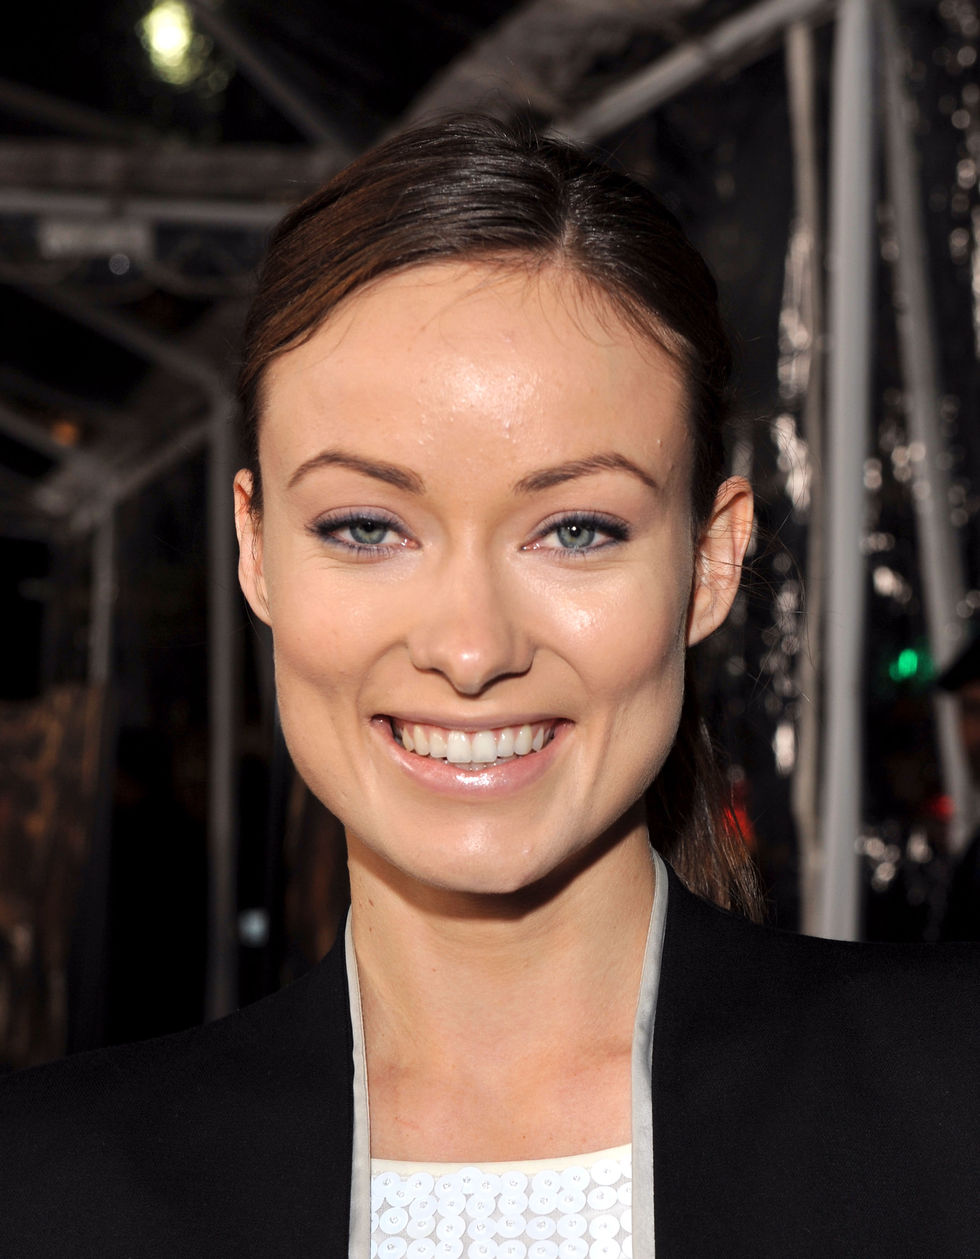 olivia-wilde-crazy-heart-premiere-in-los-angeles-01